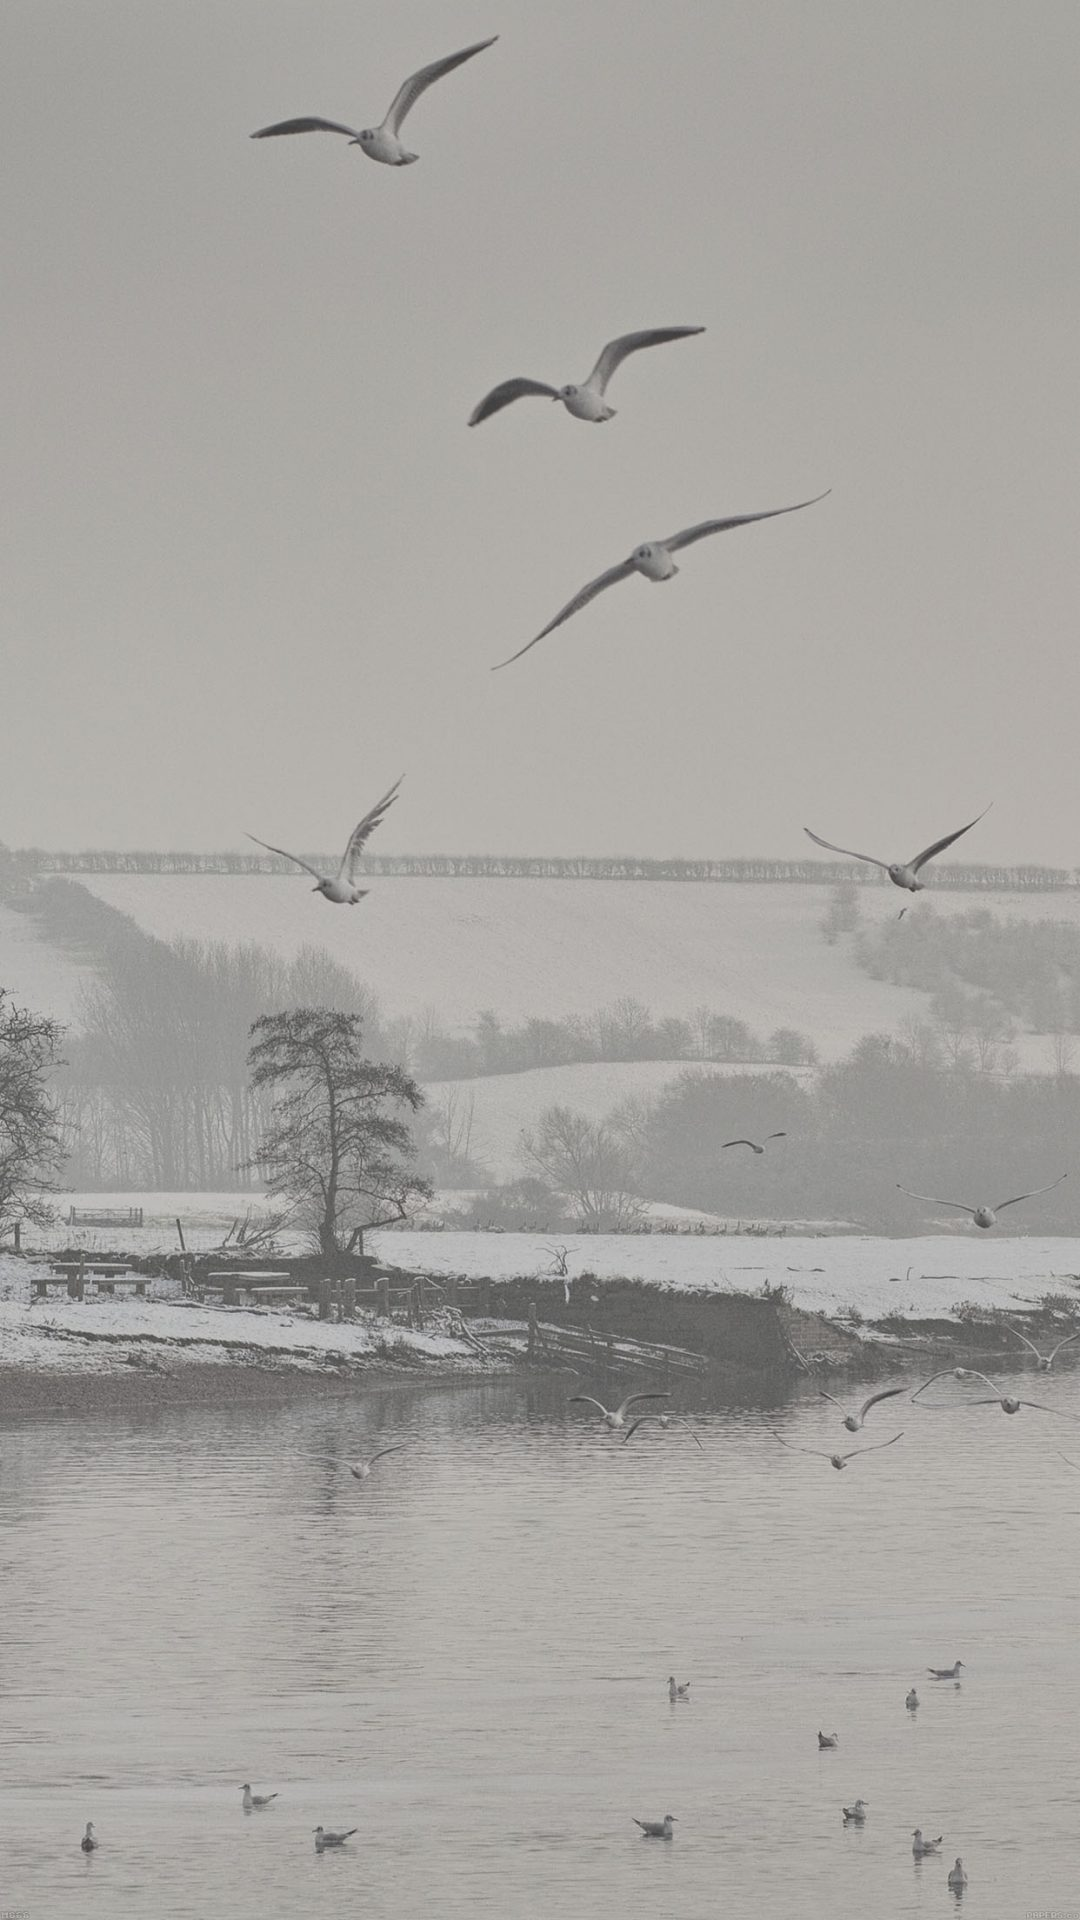 Fly Birds Snowy River Winter Lake Nature